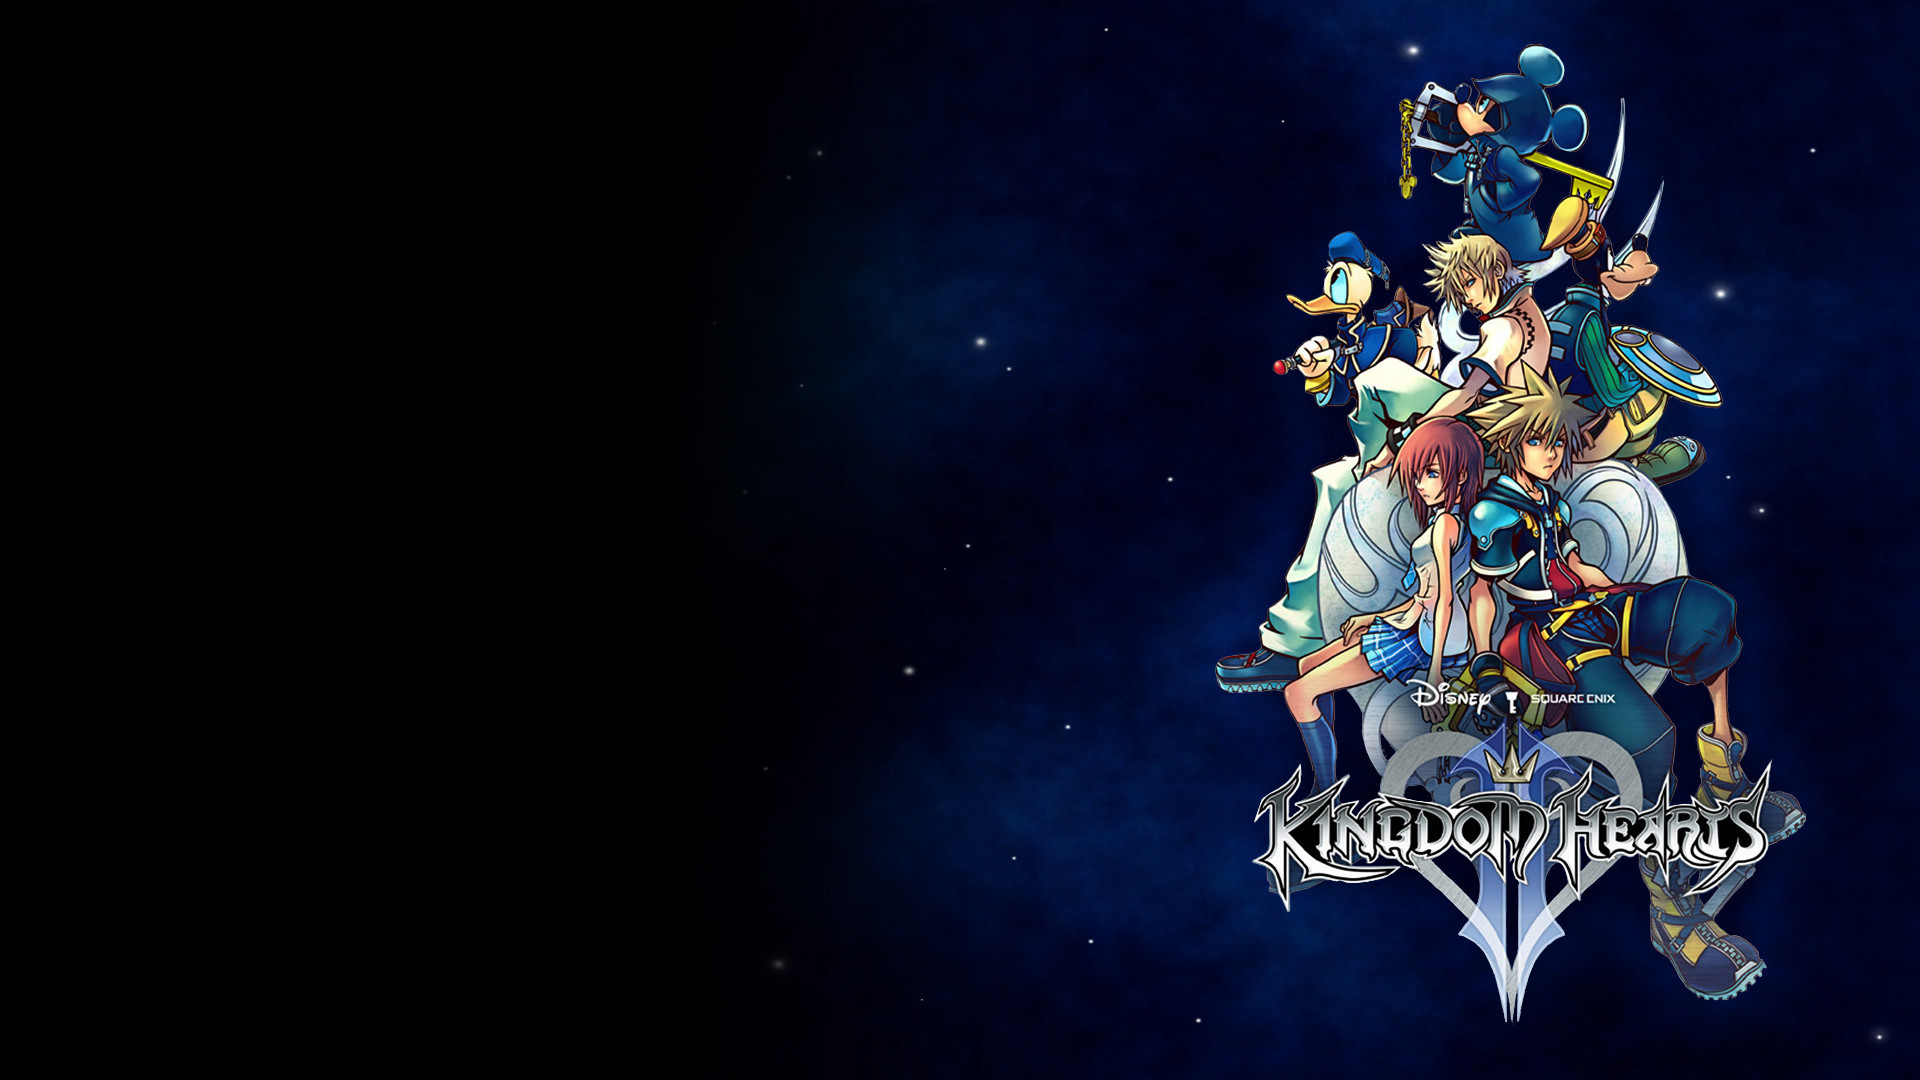 1920x1080 Here is a collection of Kingdom Hearts wallpapers that I compiled. Feel  free to use them as your own wallpapers.